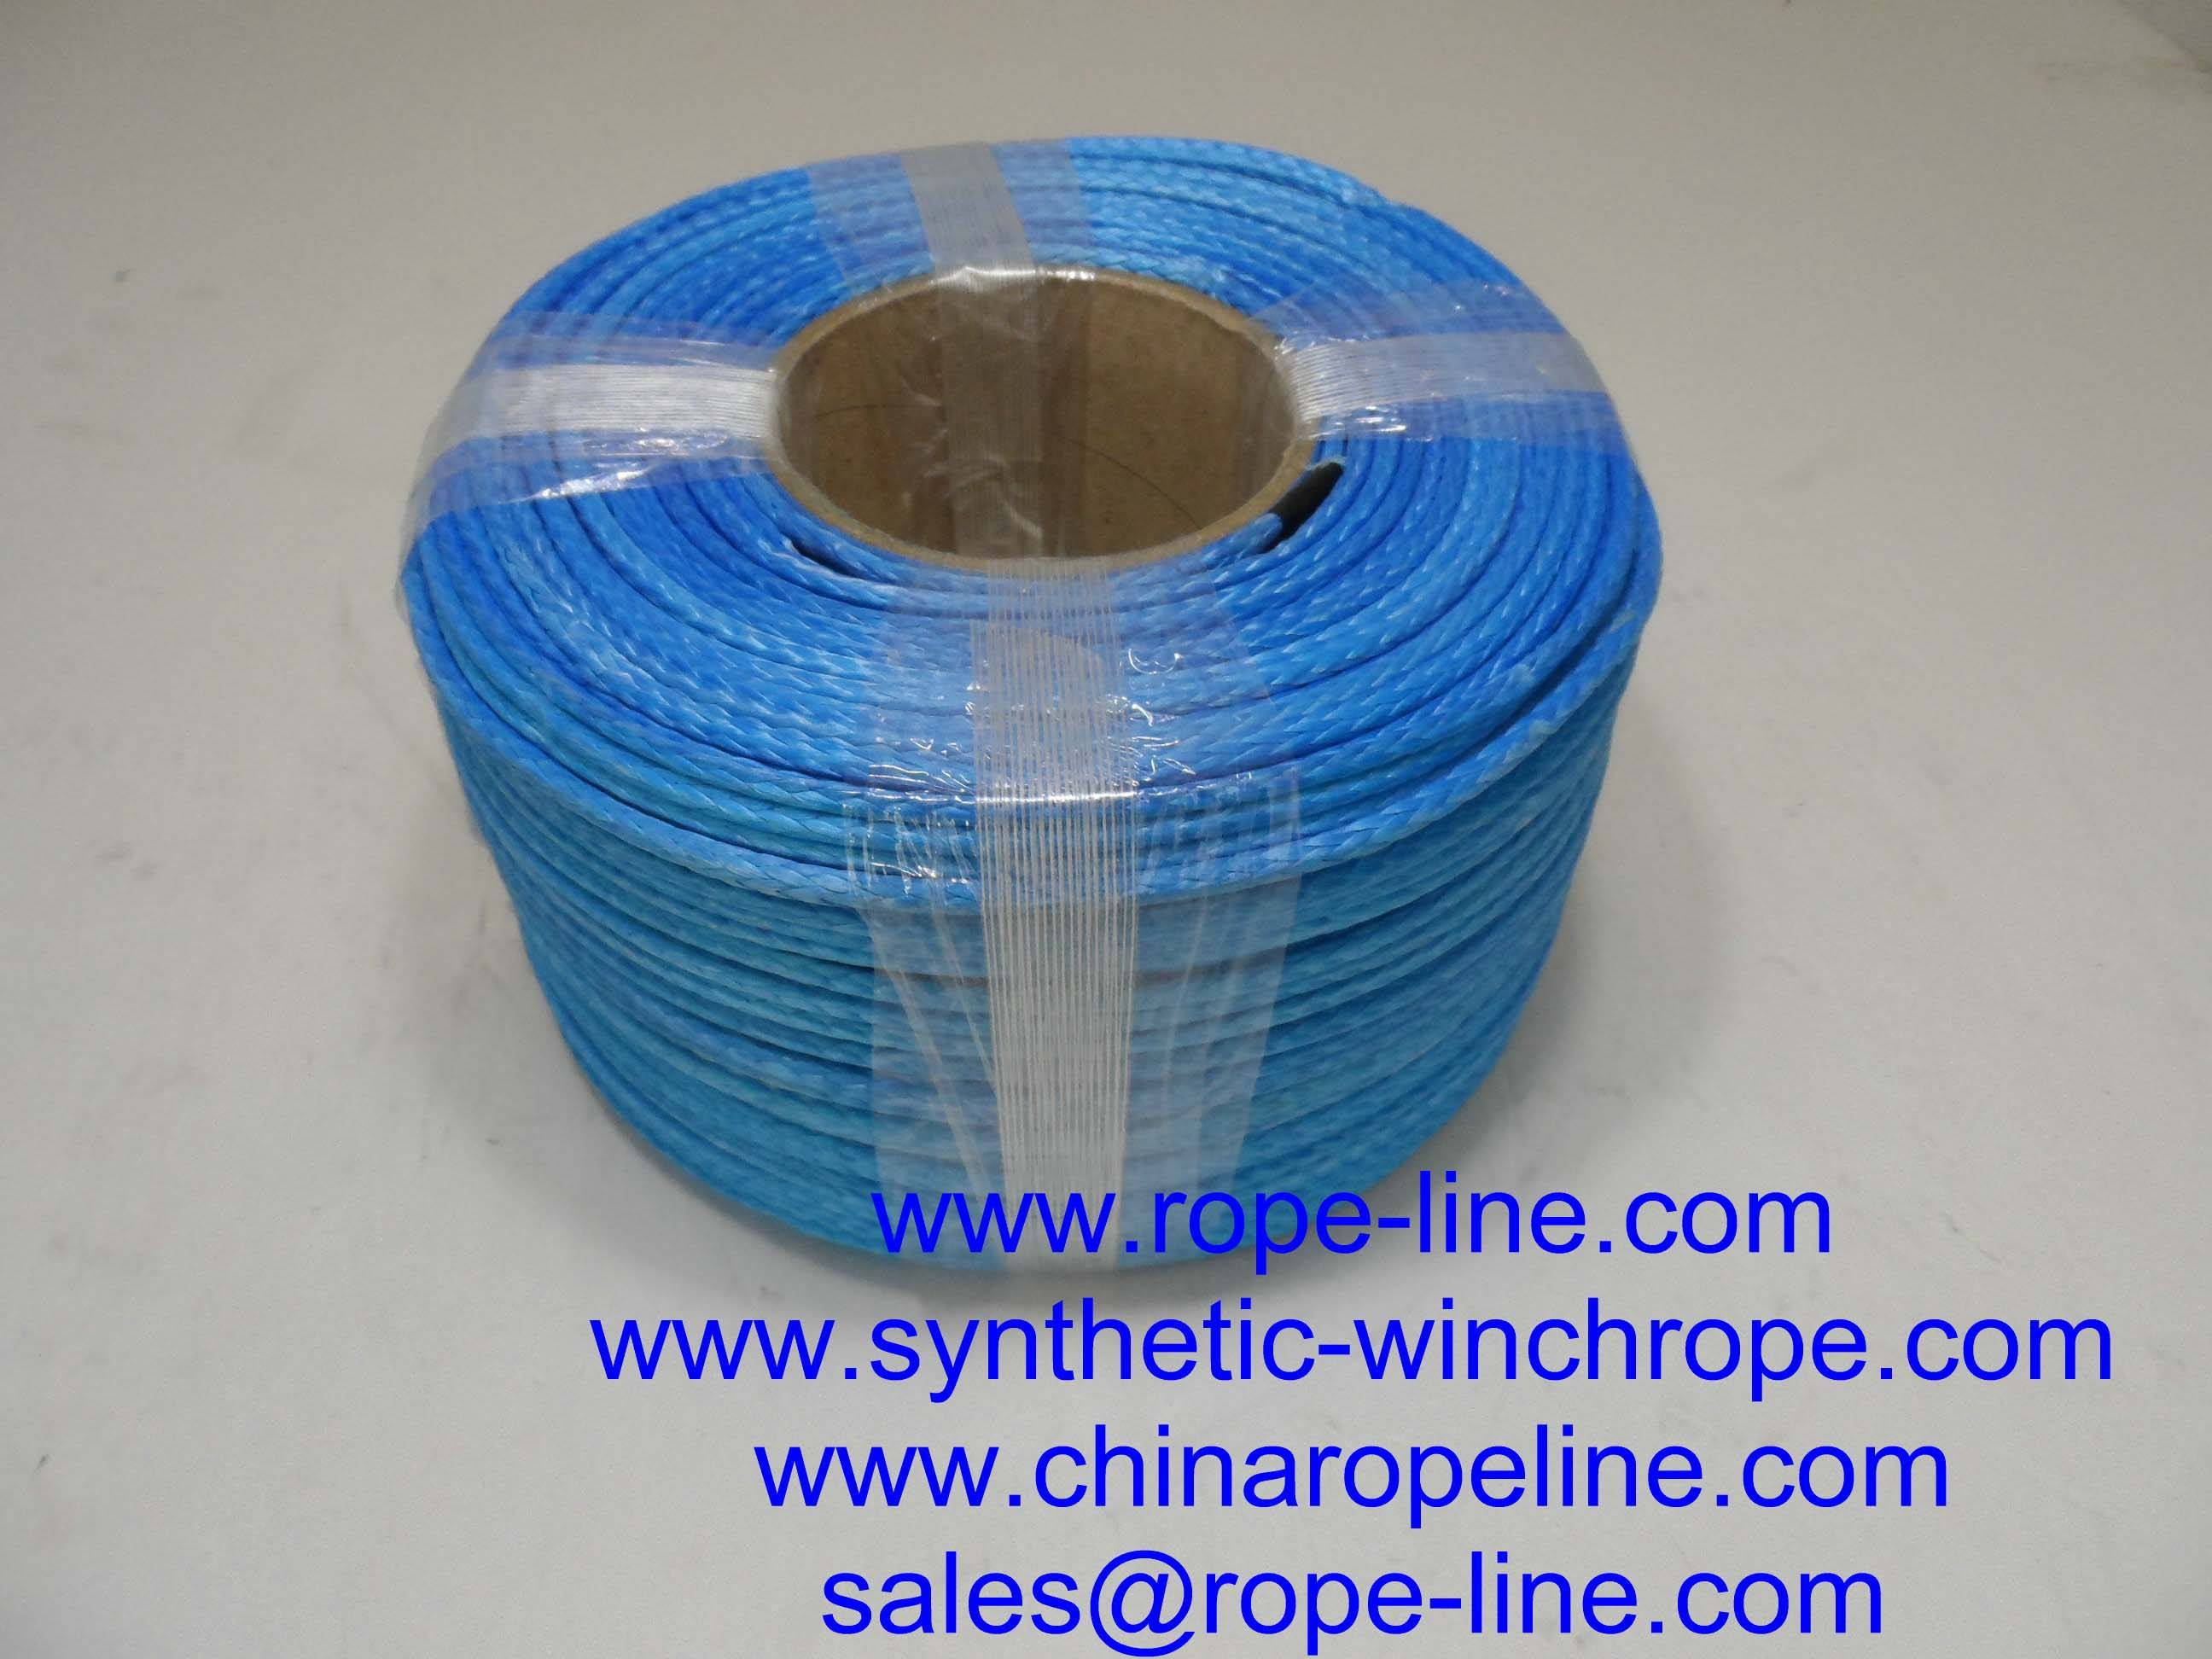 samson amsteel blue winch rope